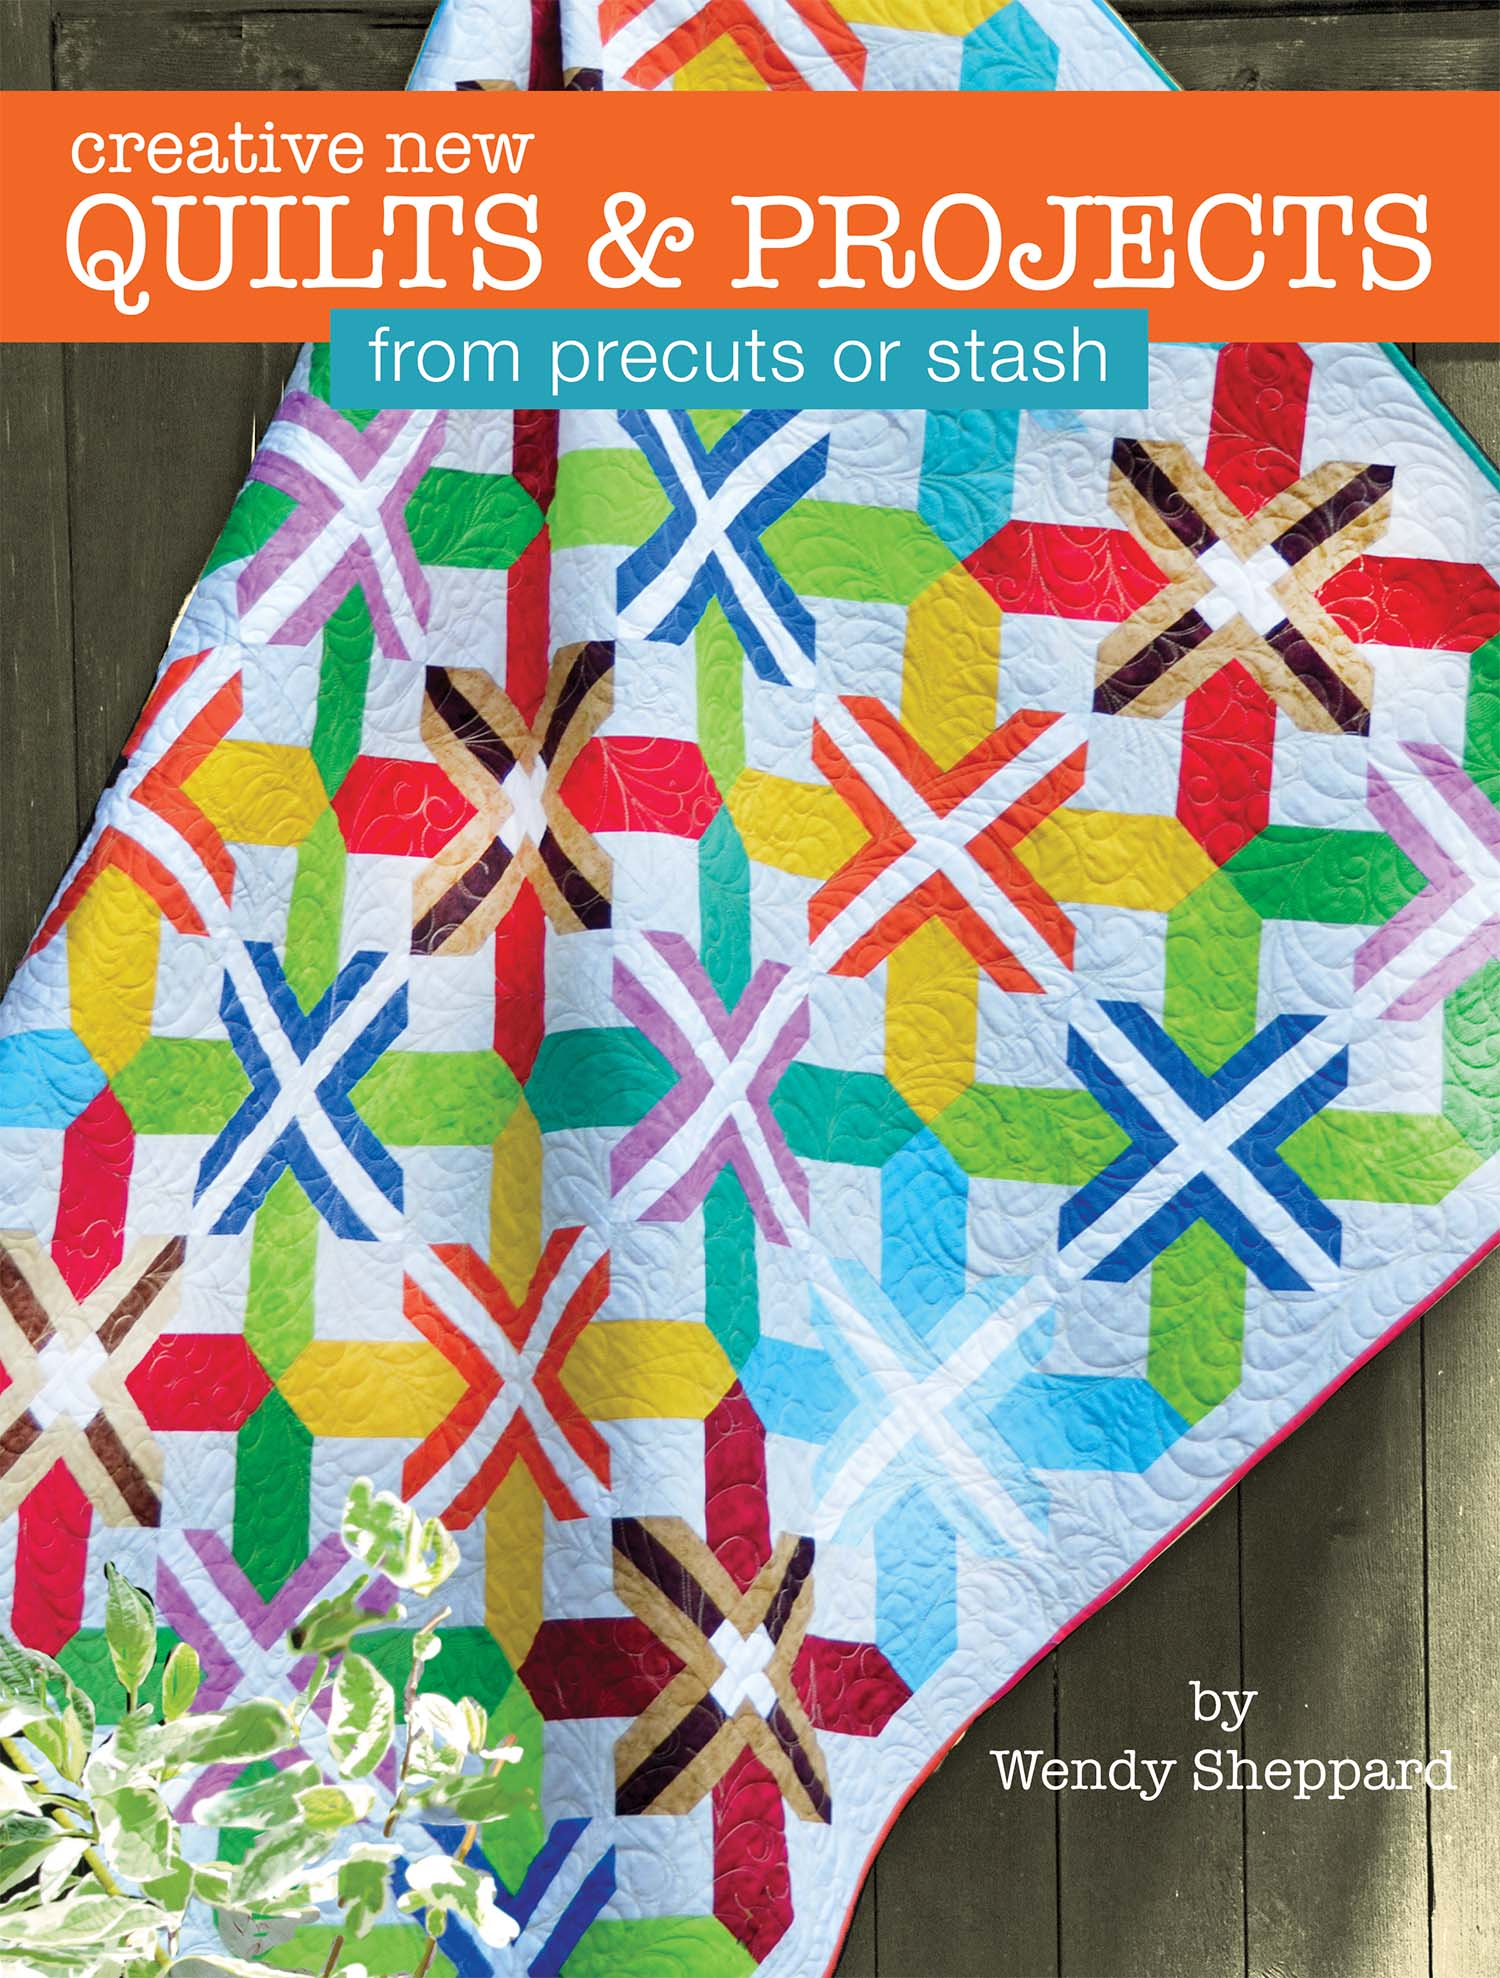 Quilts & Projects from precuts or stash